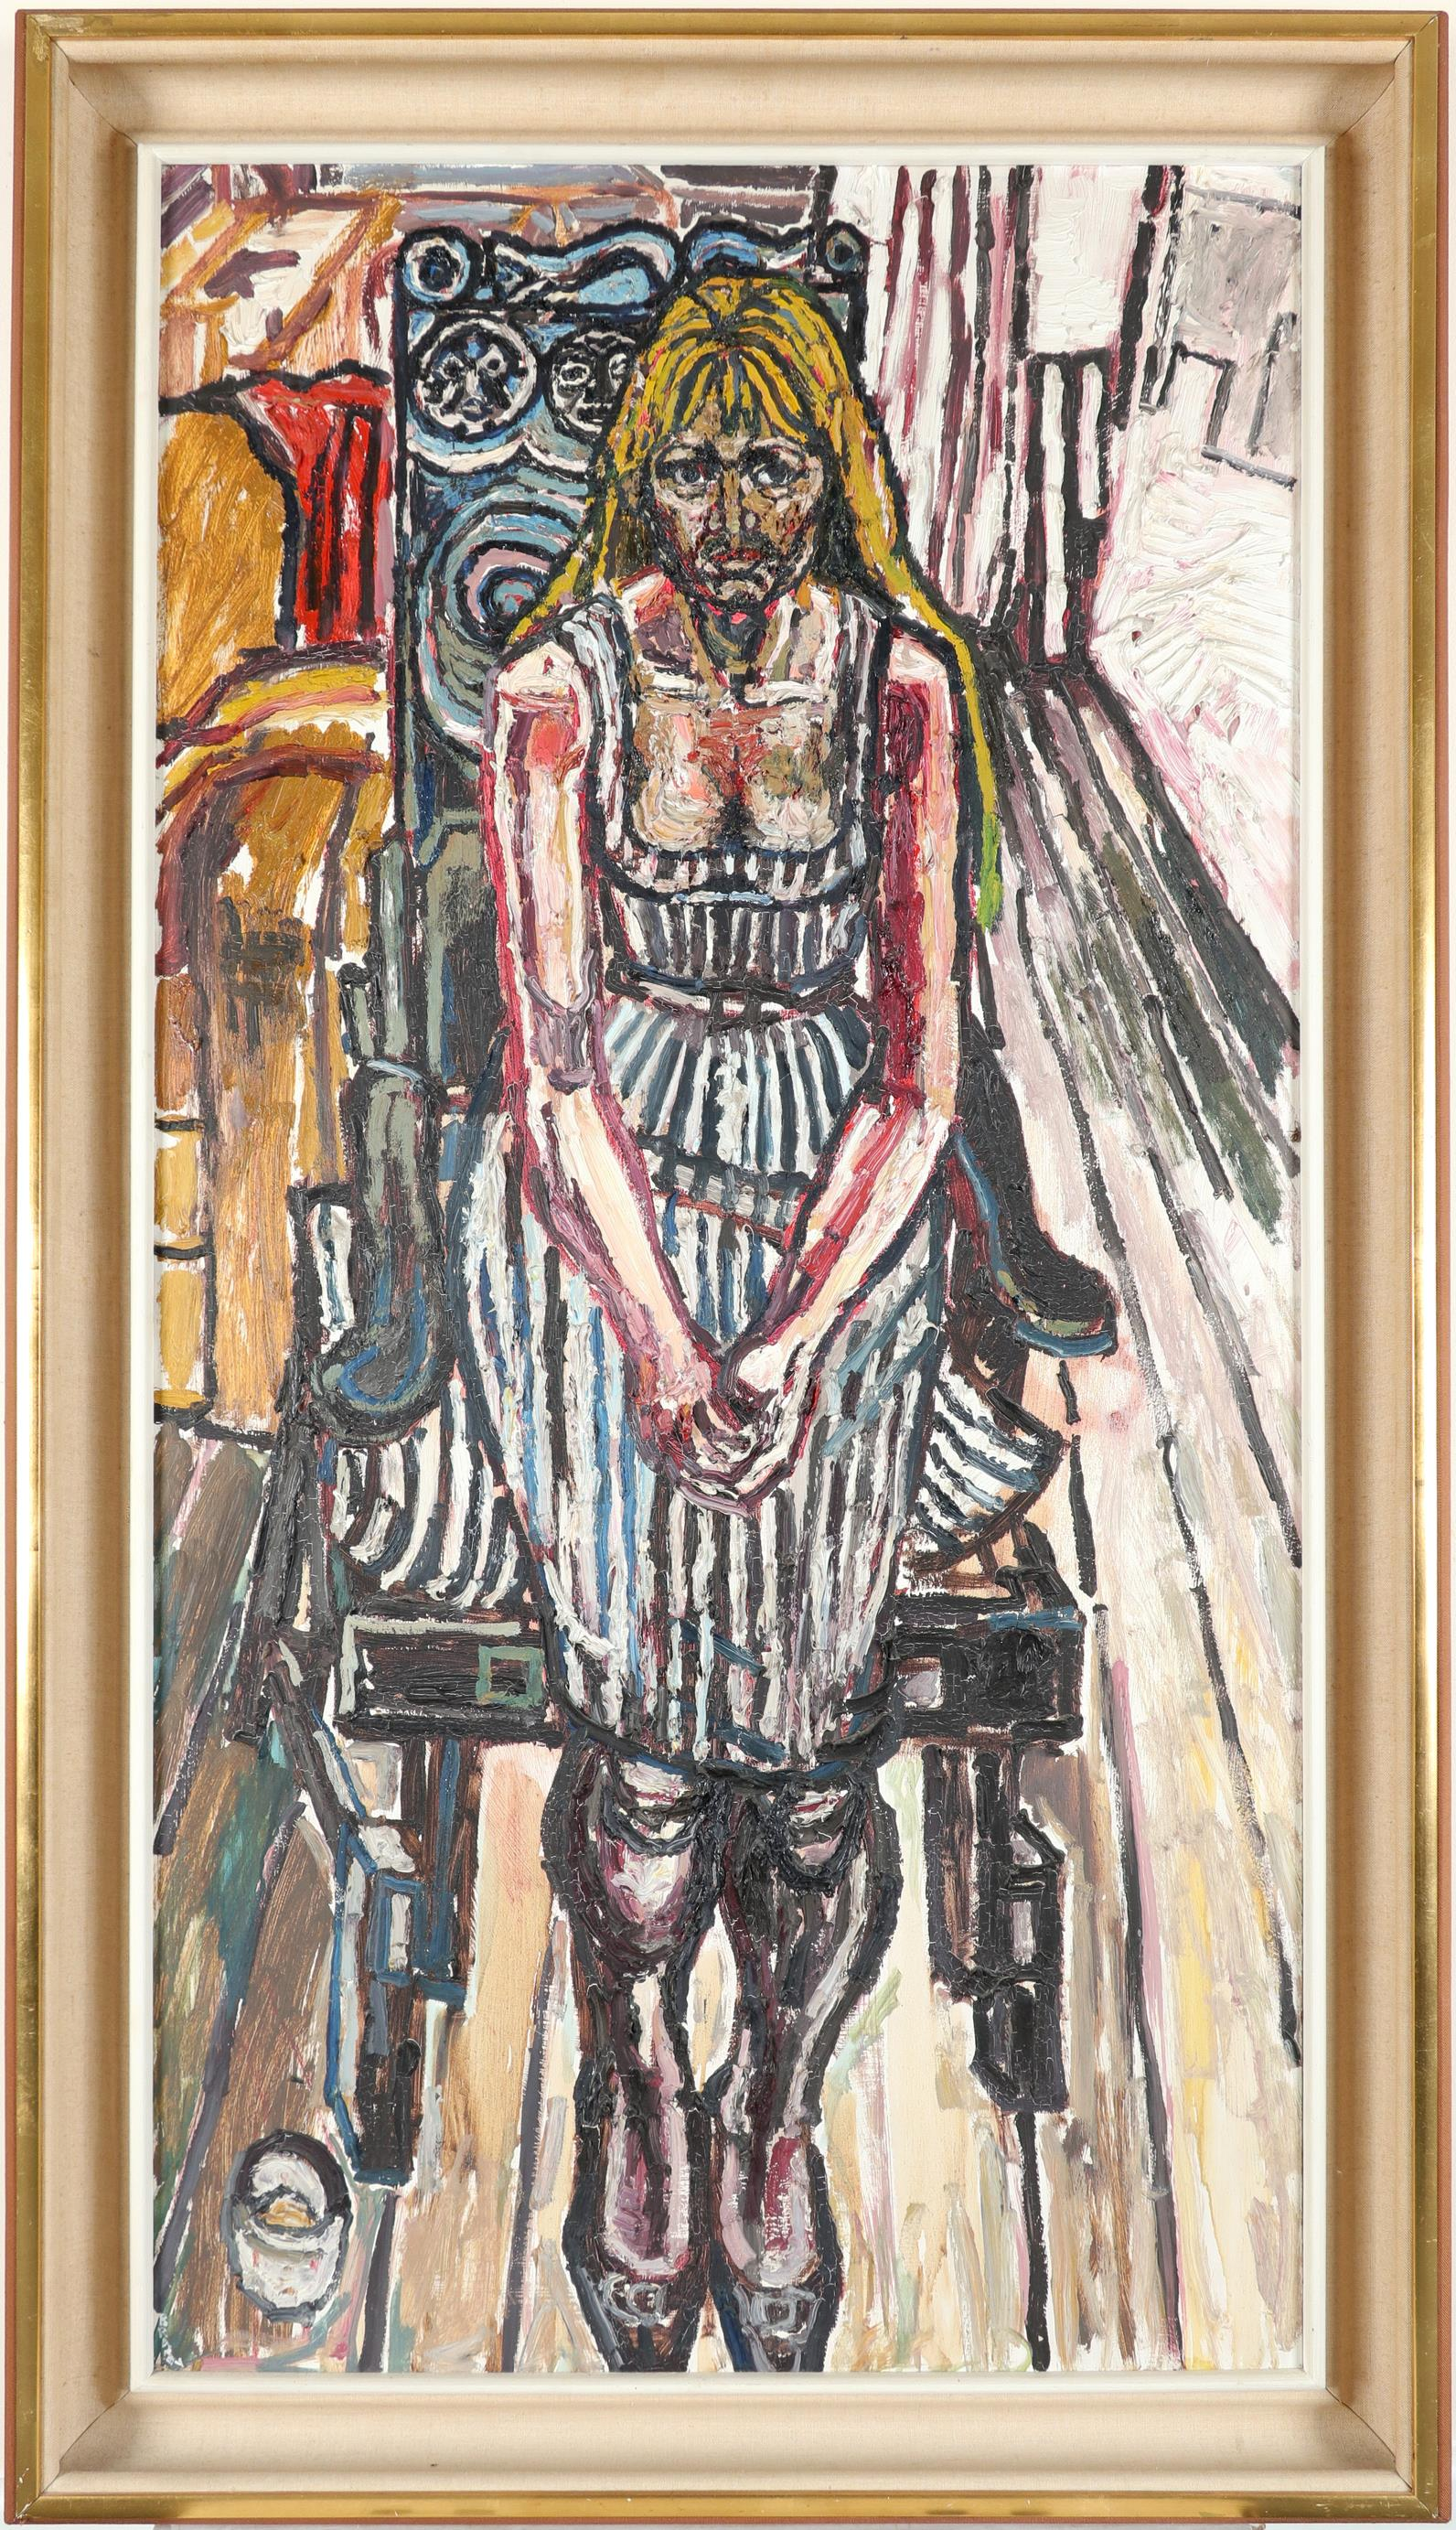 ‡John Bratby RA (1928-1992) Girl in a carved chair Signed BRATBY (lower left) Oil on board, c. - Image 2 of 3